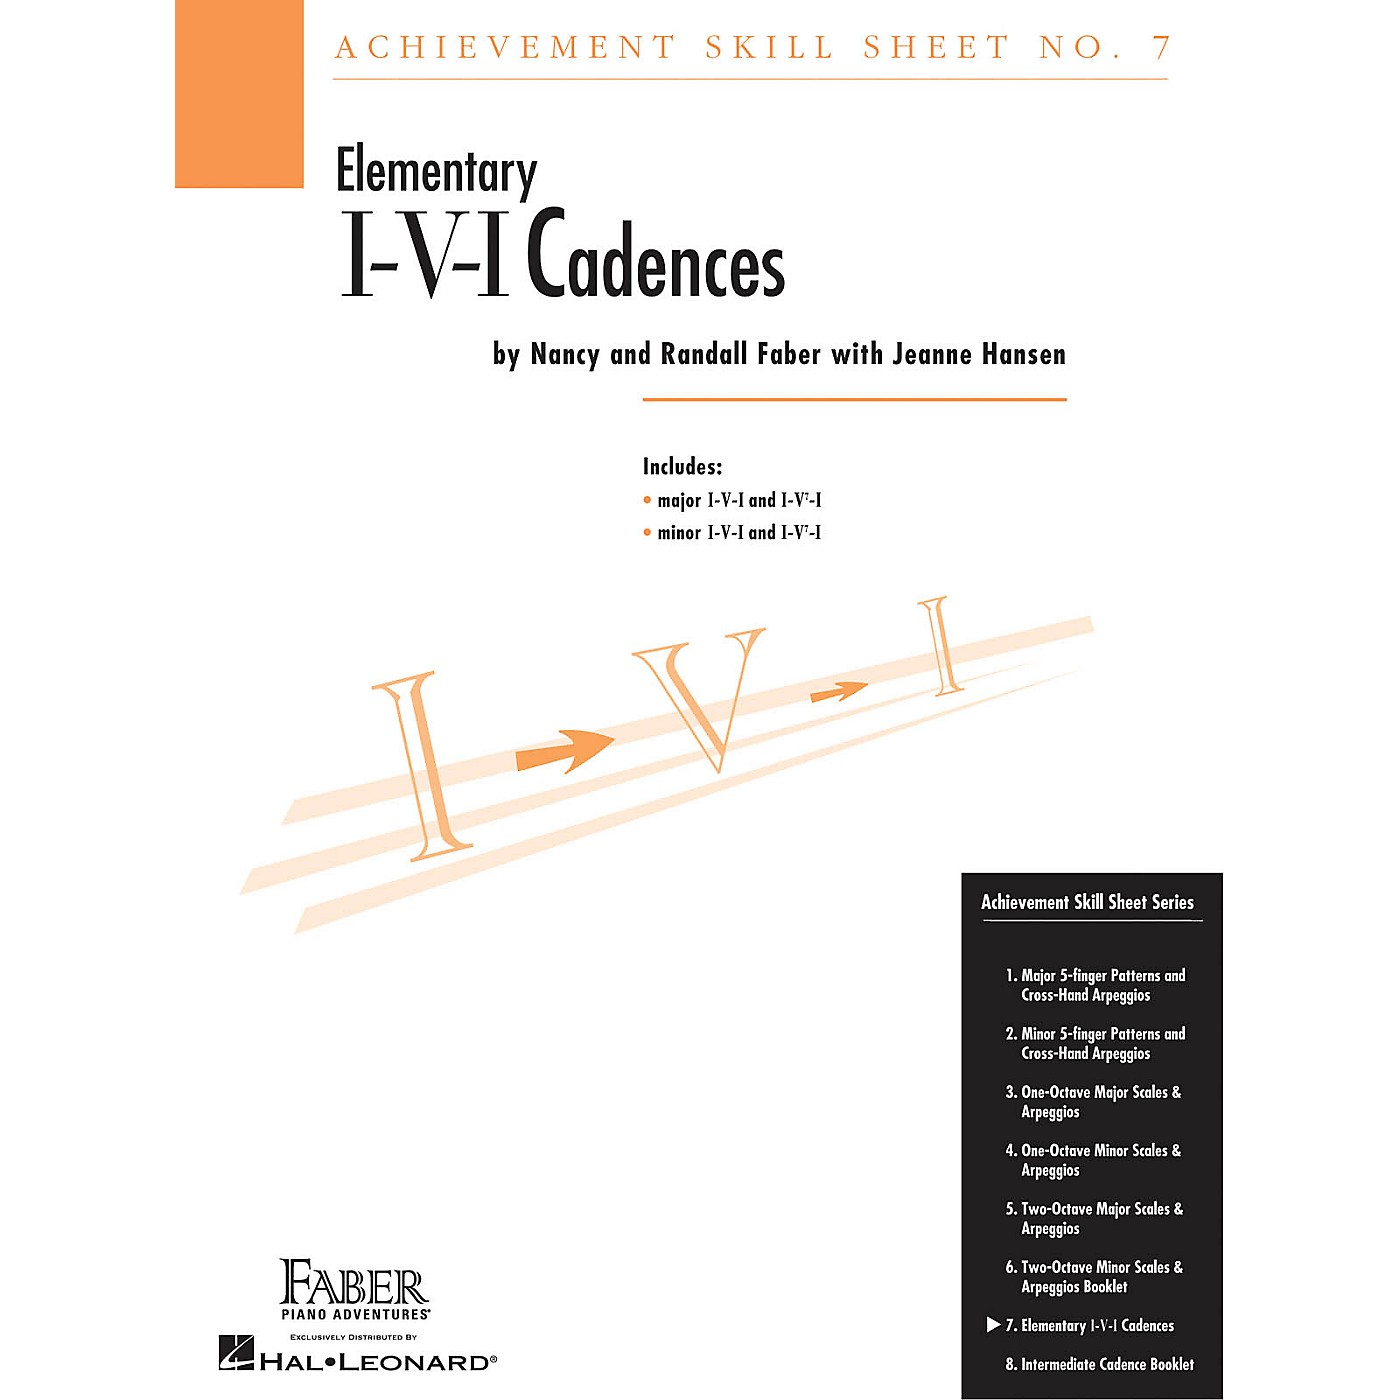 Faber Piano Adventures Achievement Skill Sheet No. 7: I-V-I Cadences Faber Piano Adventures® Series Composed by Nancy Faber thumbnail